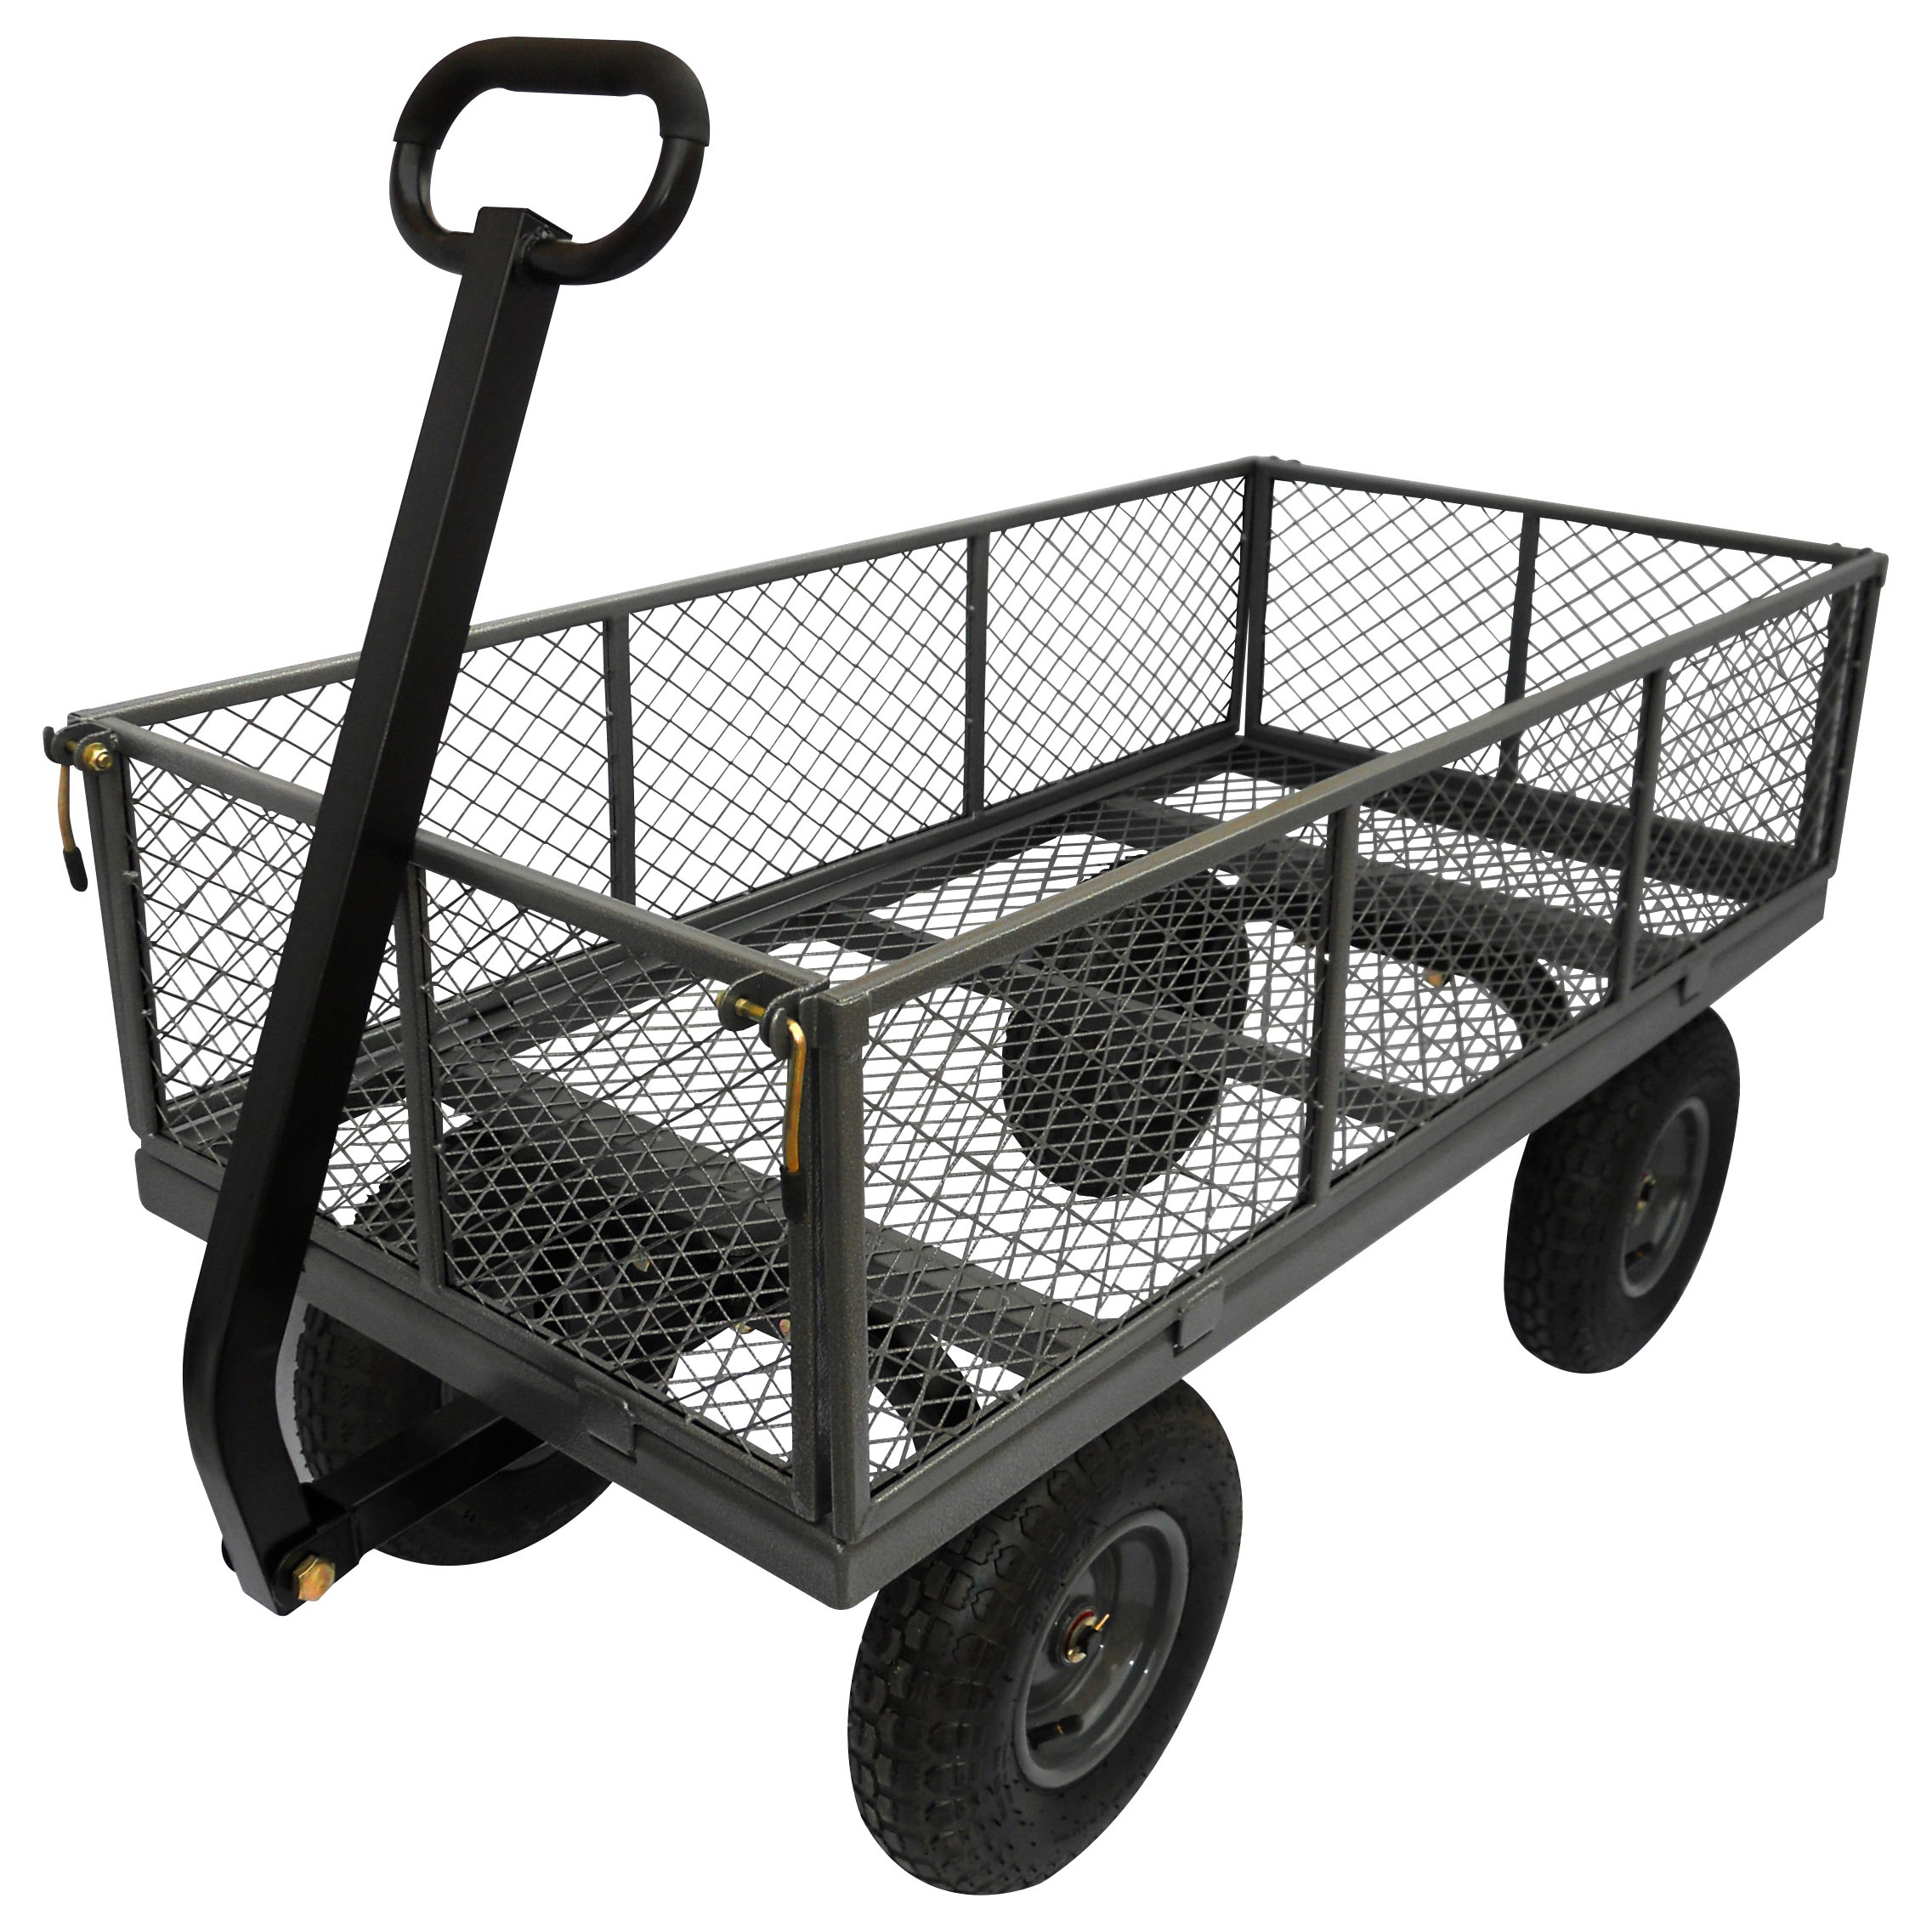 Picture of Landscapers Select TC4205EG Garden Cart, 1200 lb, Steel Deck, 4 -Wheel, 13 in Wheel, Pneumatic Wheel, Pull Handle